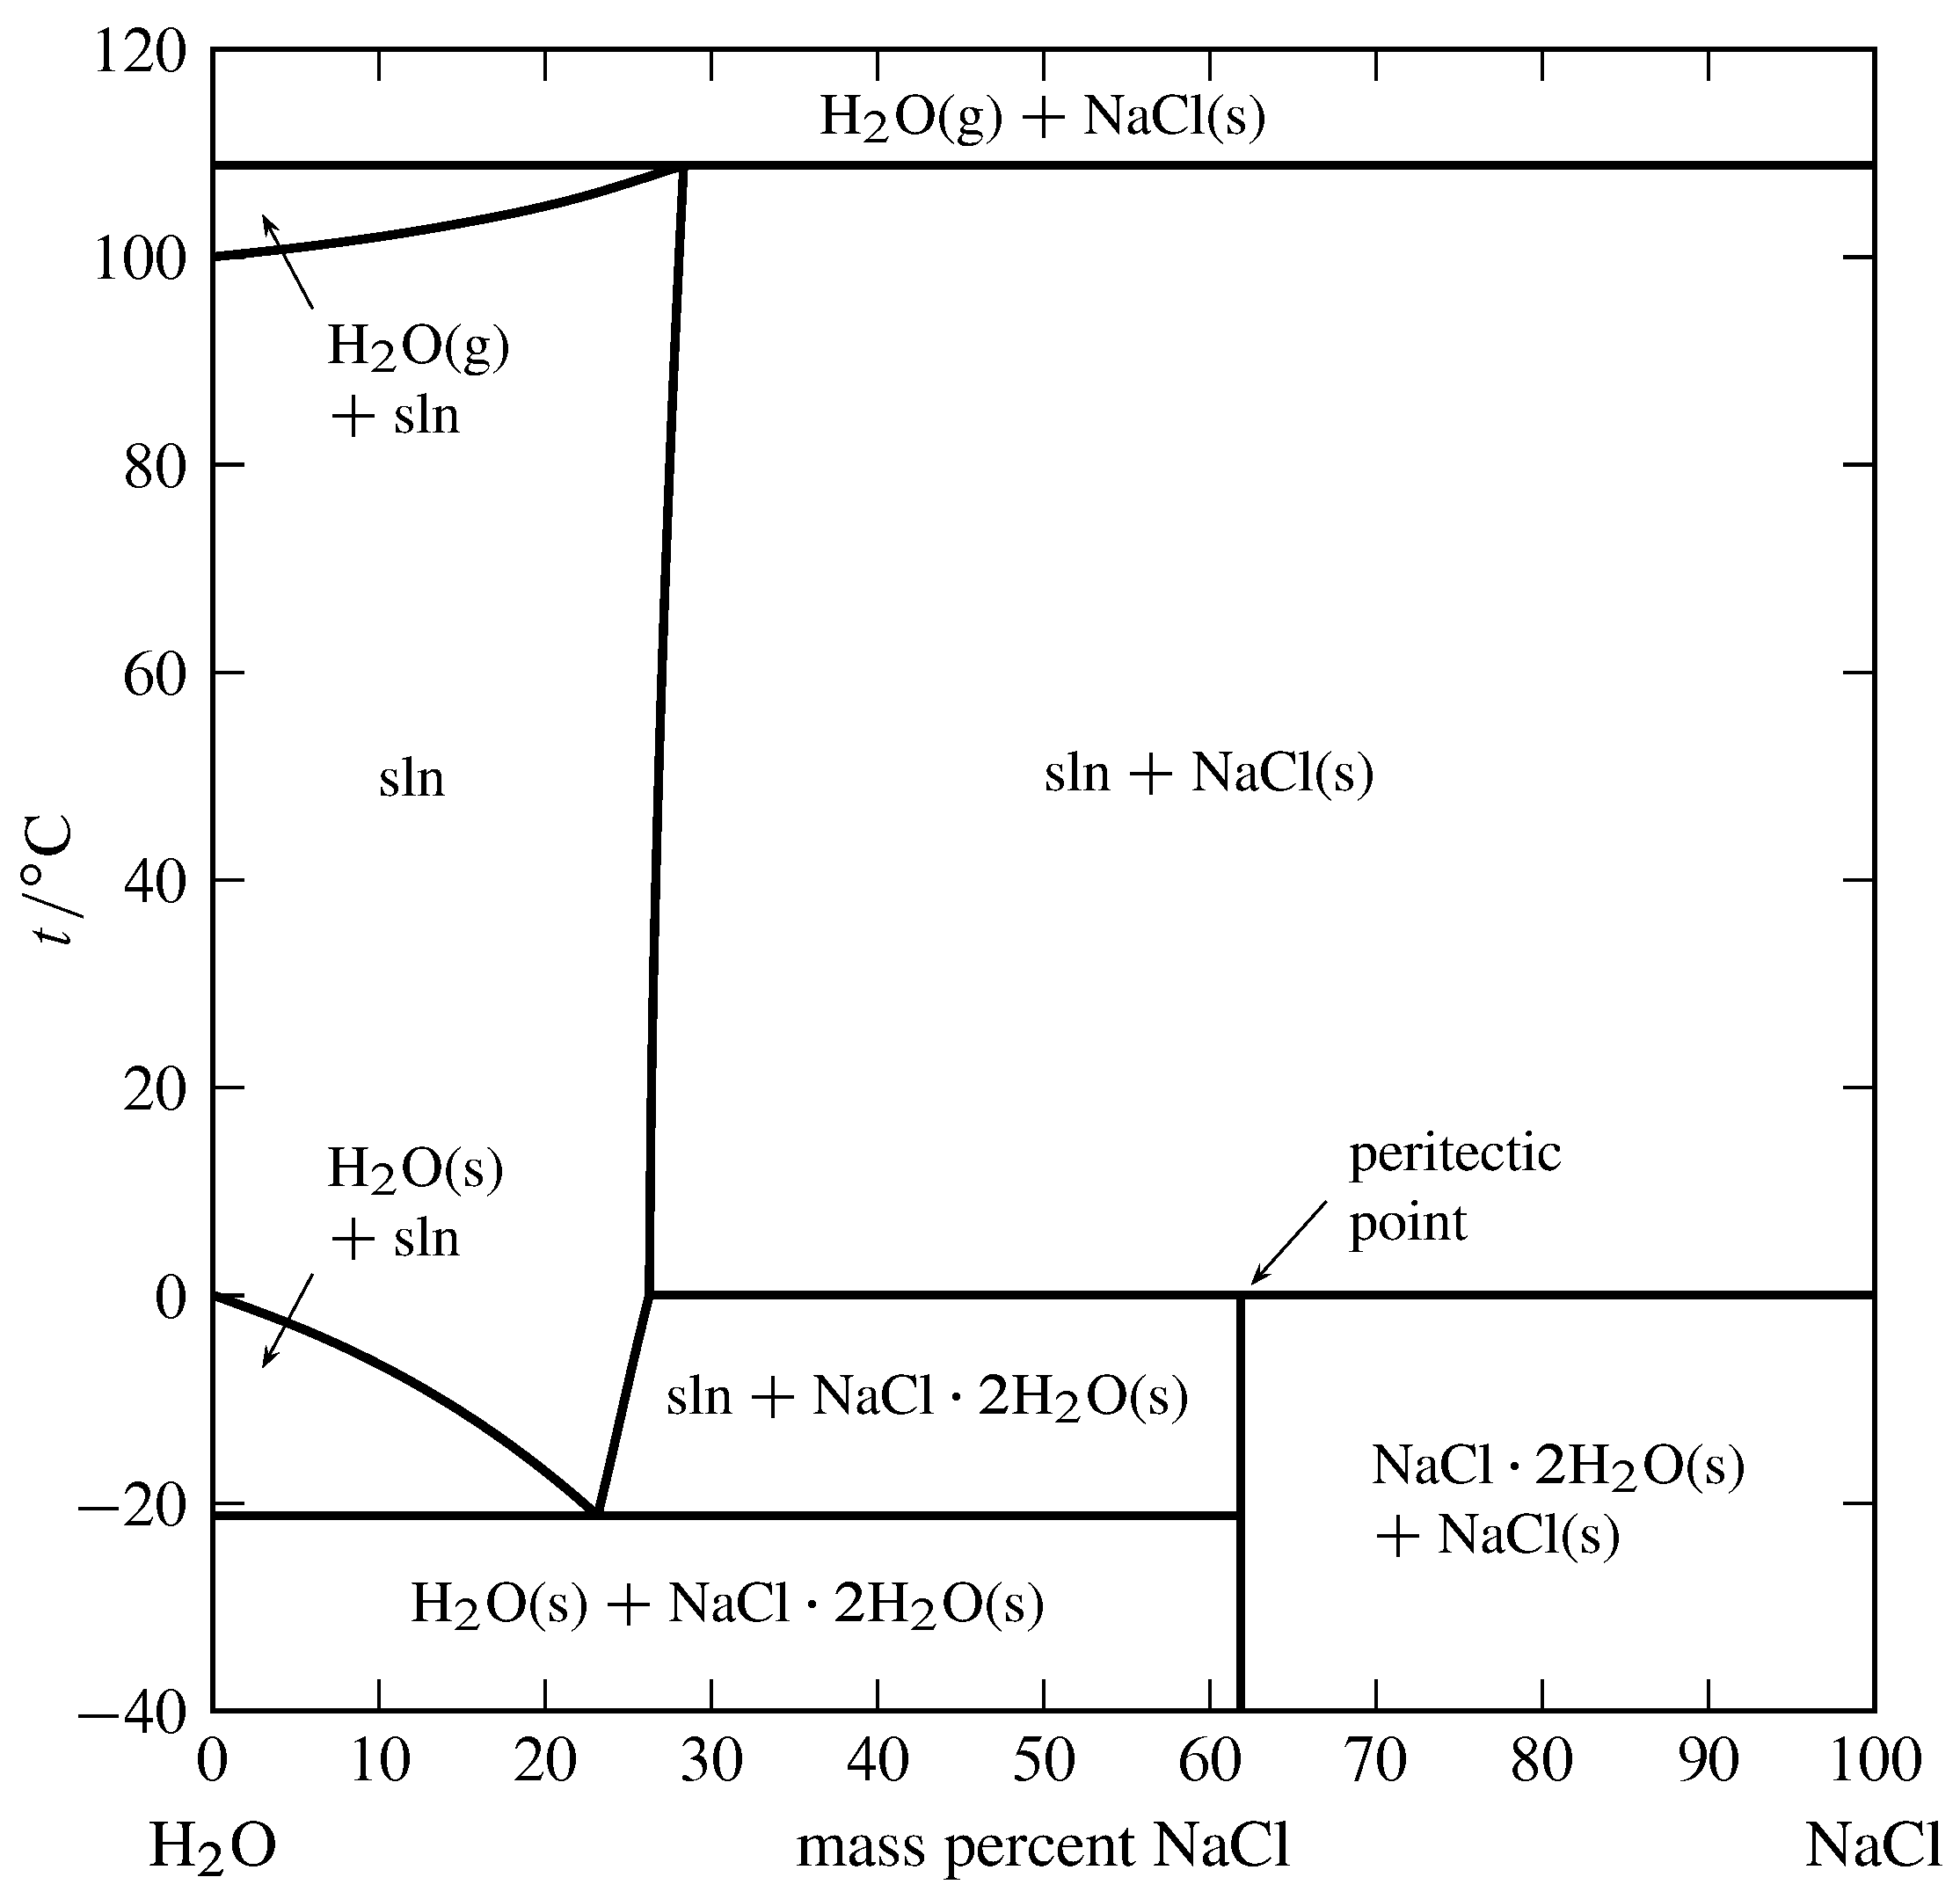 medium resolution of figure 13 4 temperature composition phase diagram for the binary system of h2o and nacl at 1bar data from roger cohen adad and john w lorimer